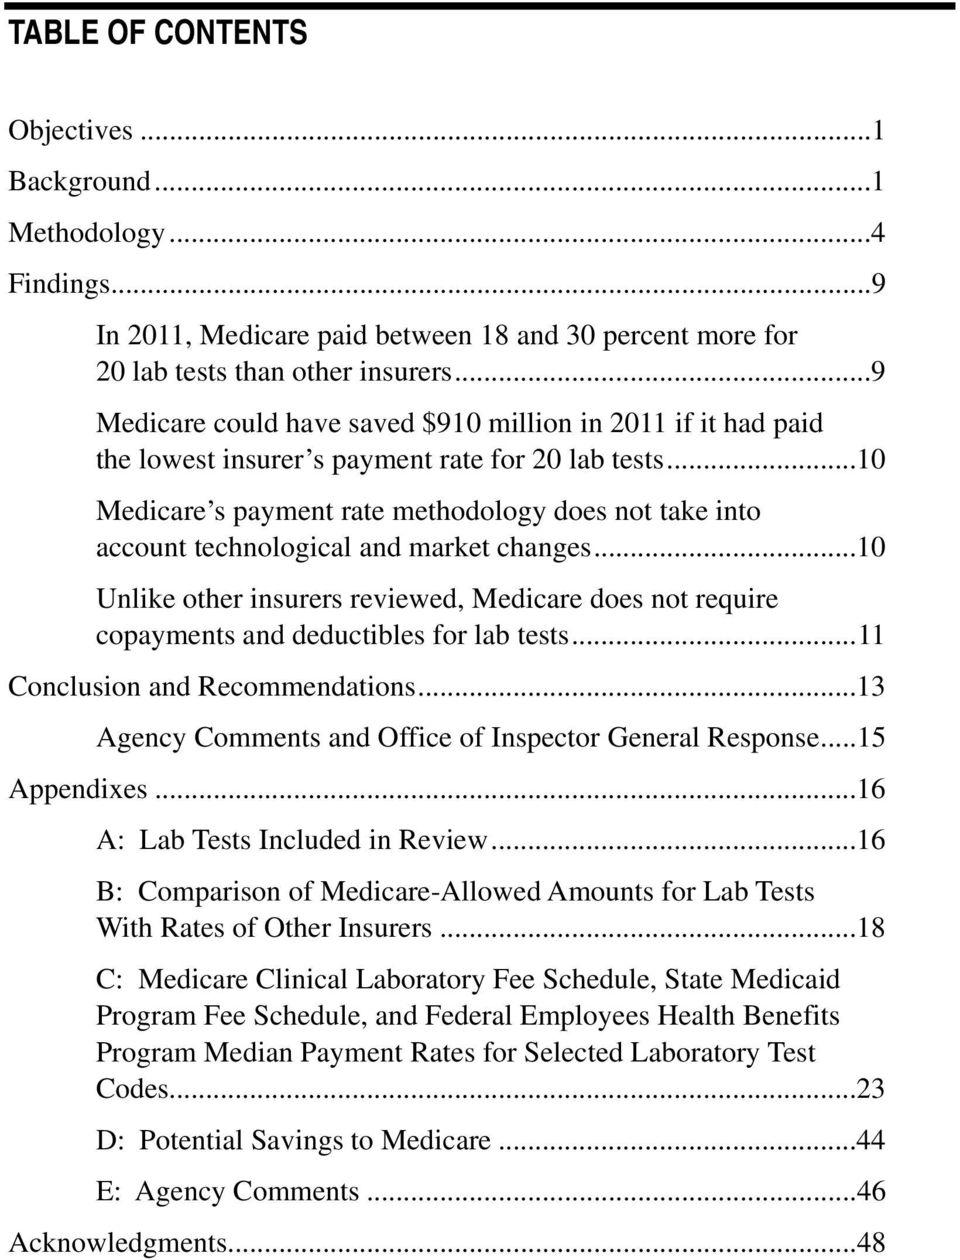 ..10 Unlike other insurers reviewed, does not require copayments and deductibles for lab tests...11 Conclusion and Recommendations...13 Agency Comments and Office of Inspector General Response.